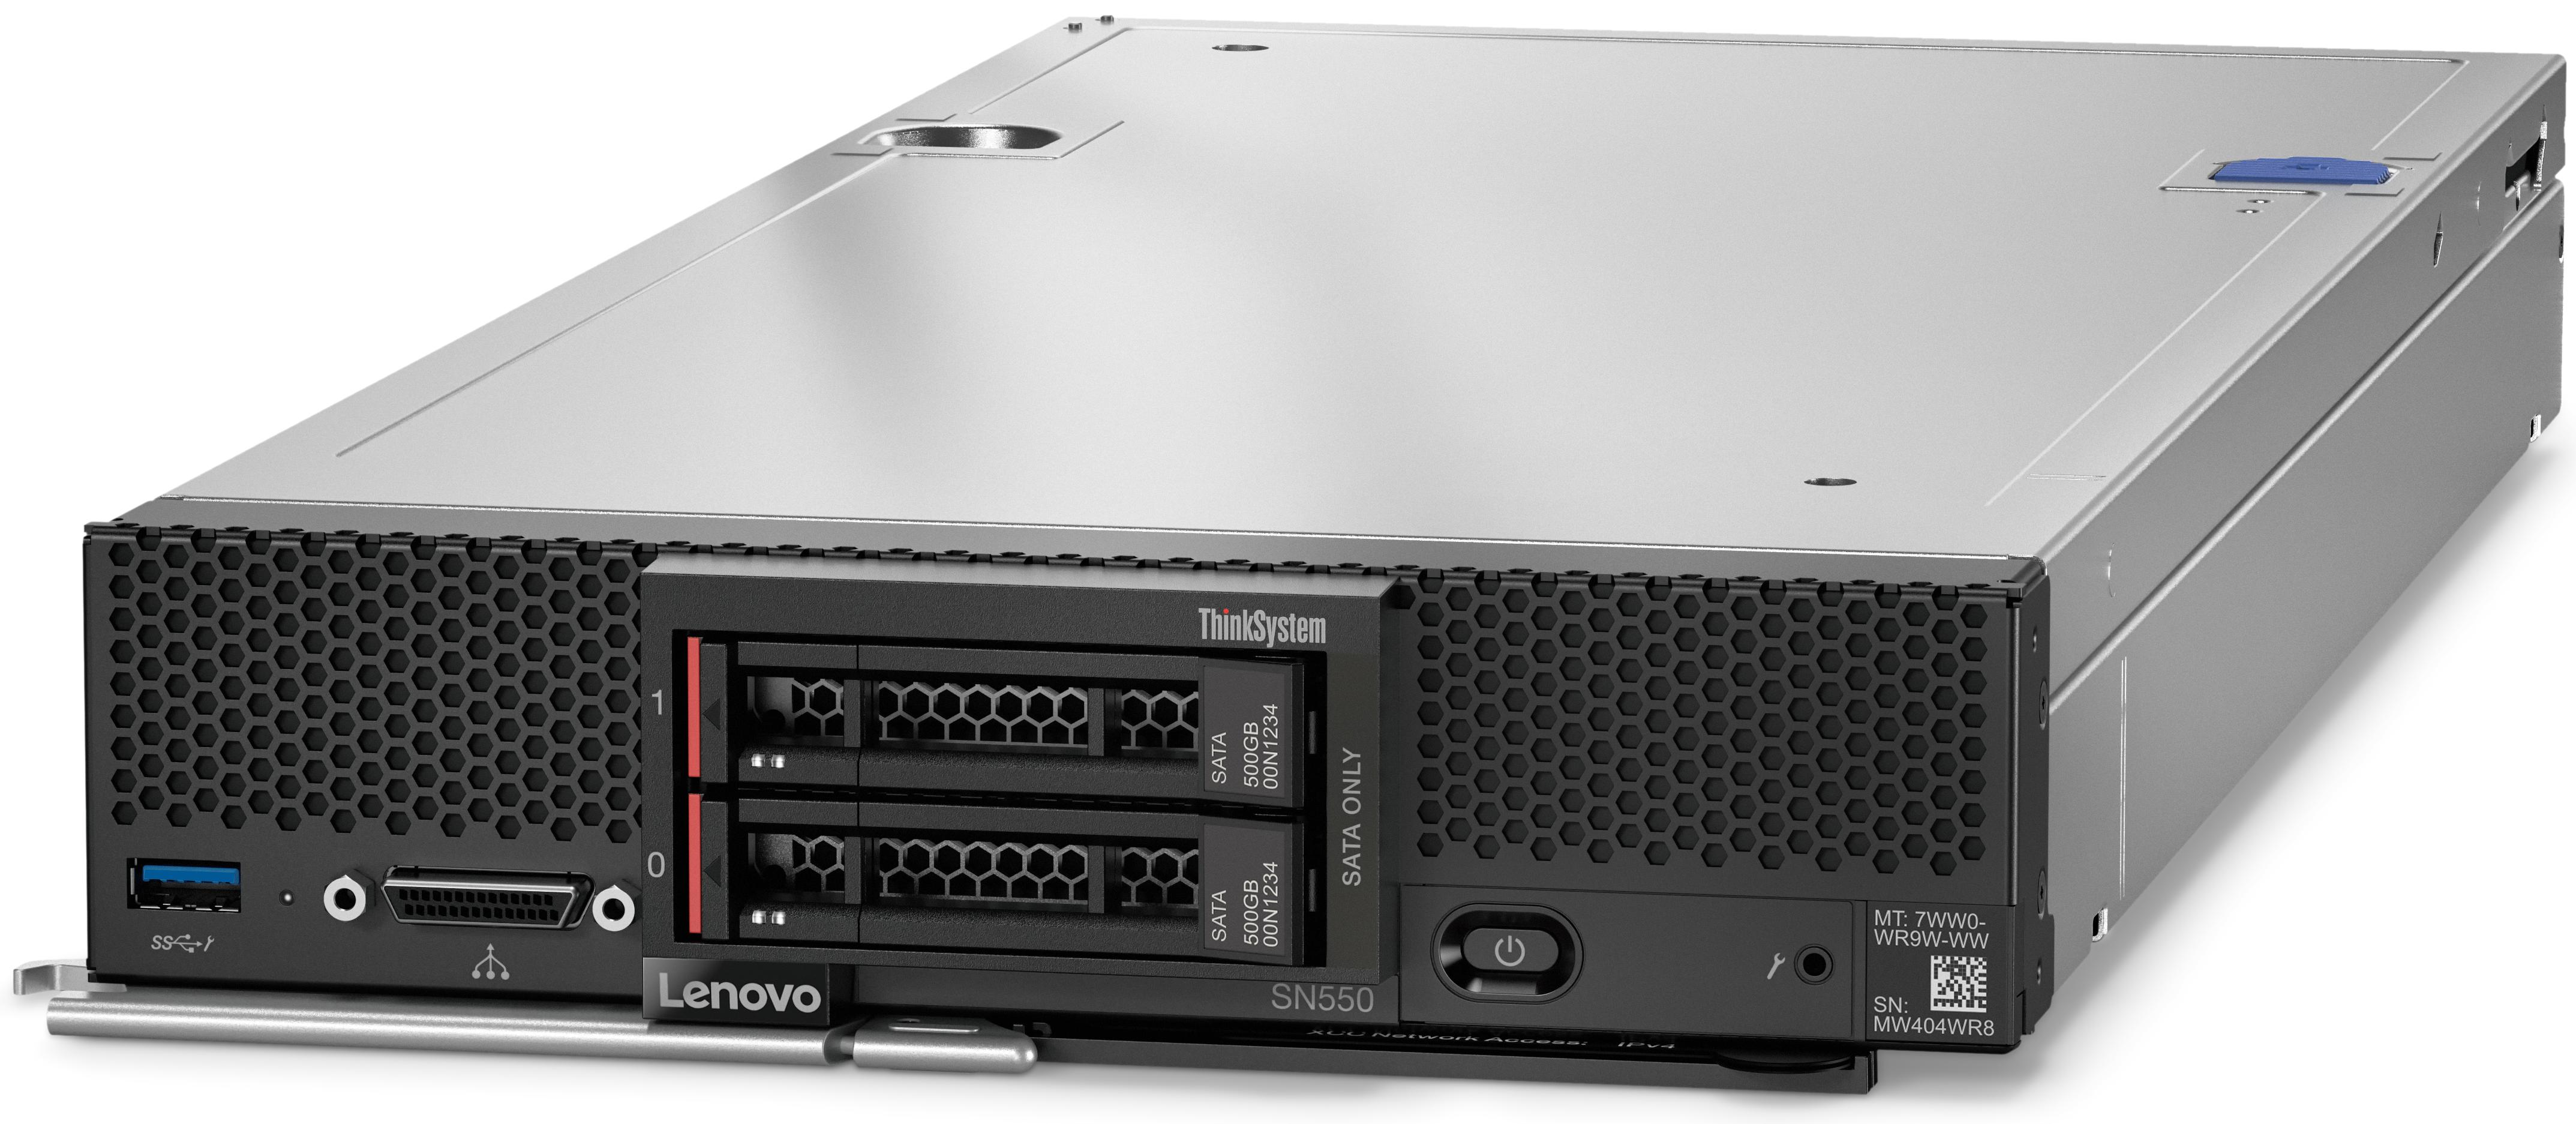 Lenovo ThinkSystem SN550